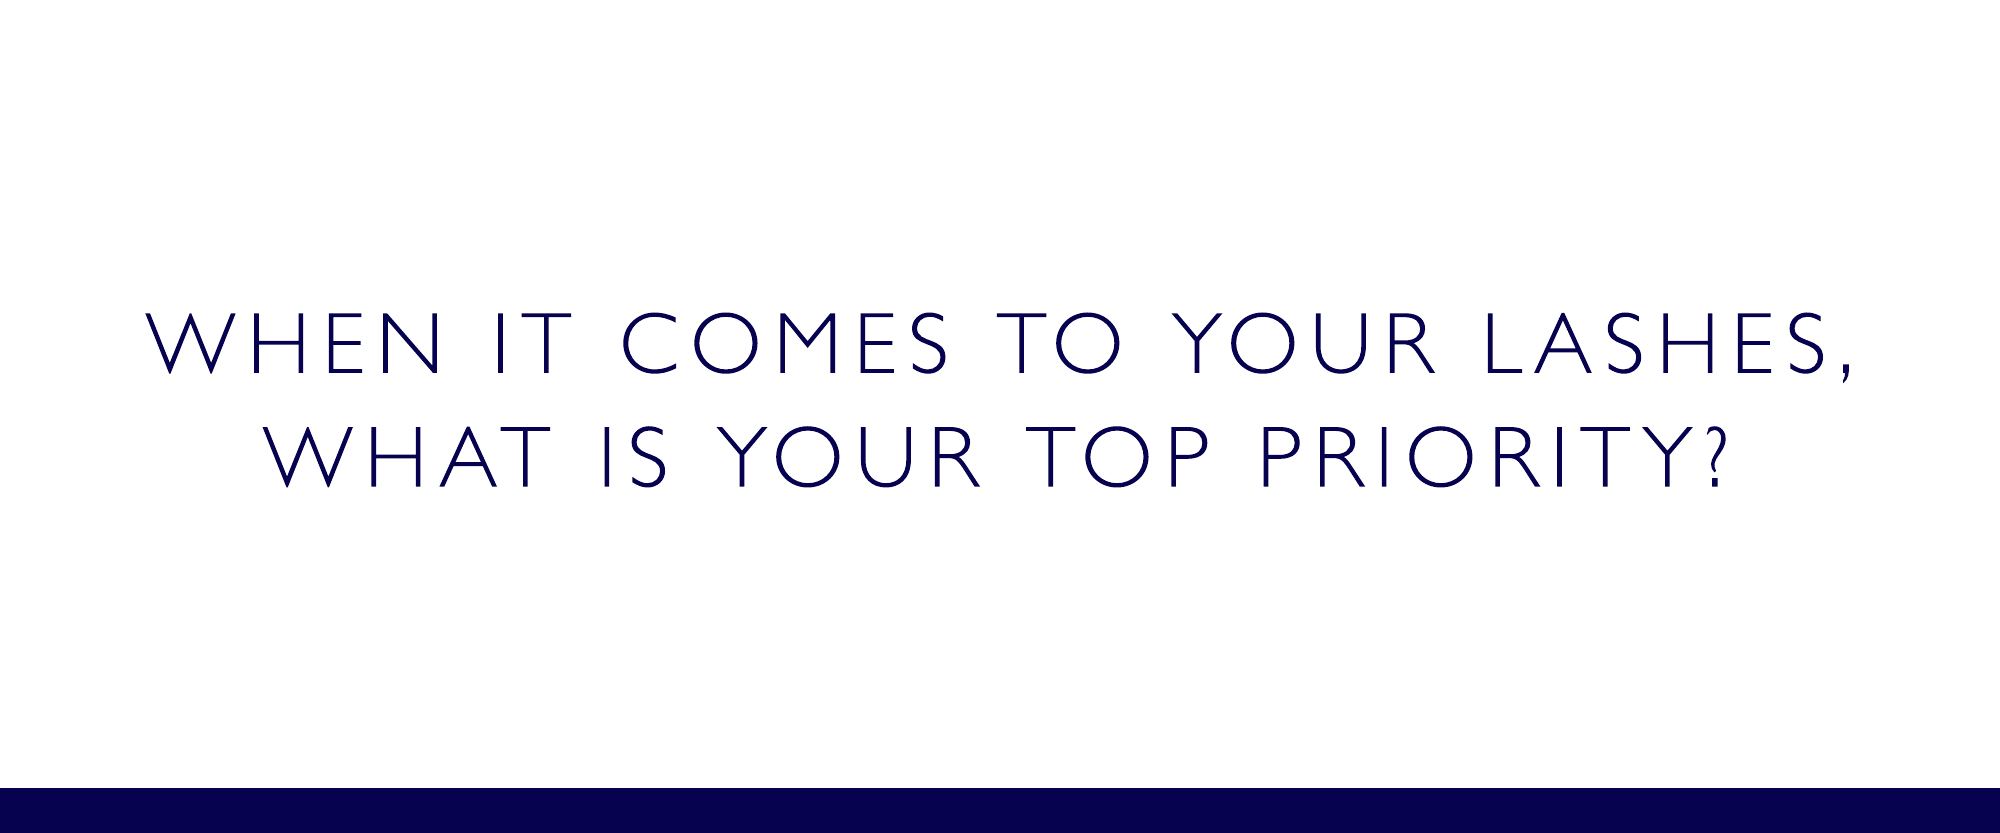 What is your top priority for the formula?